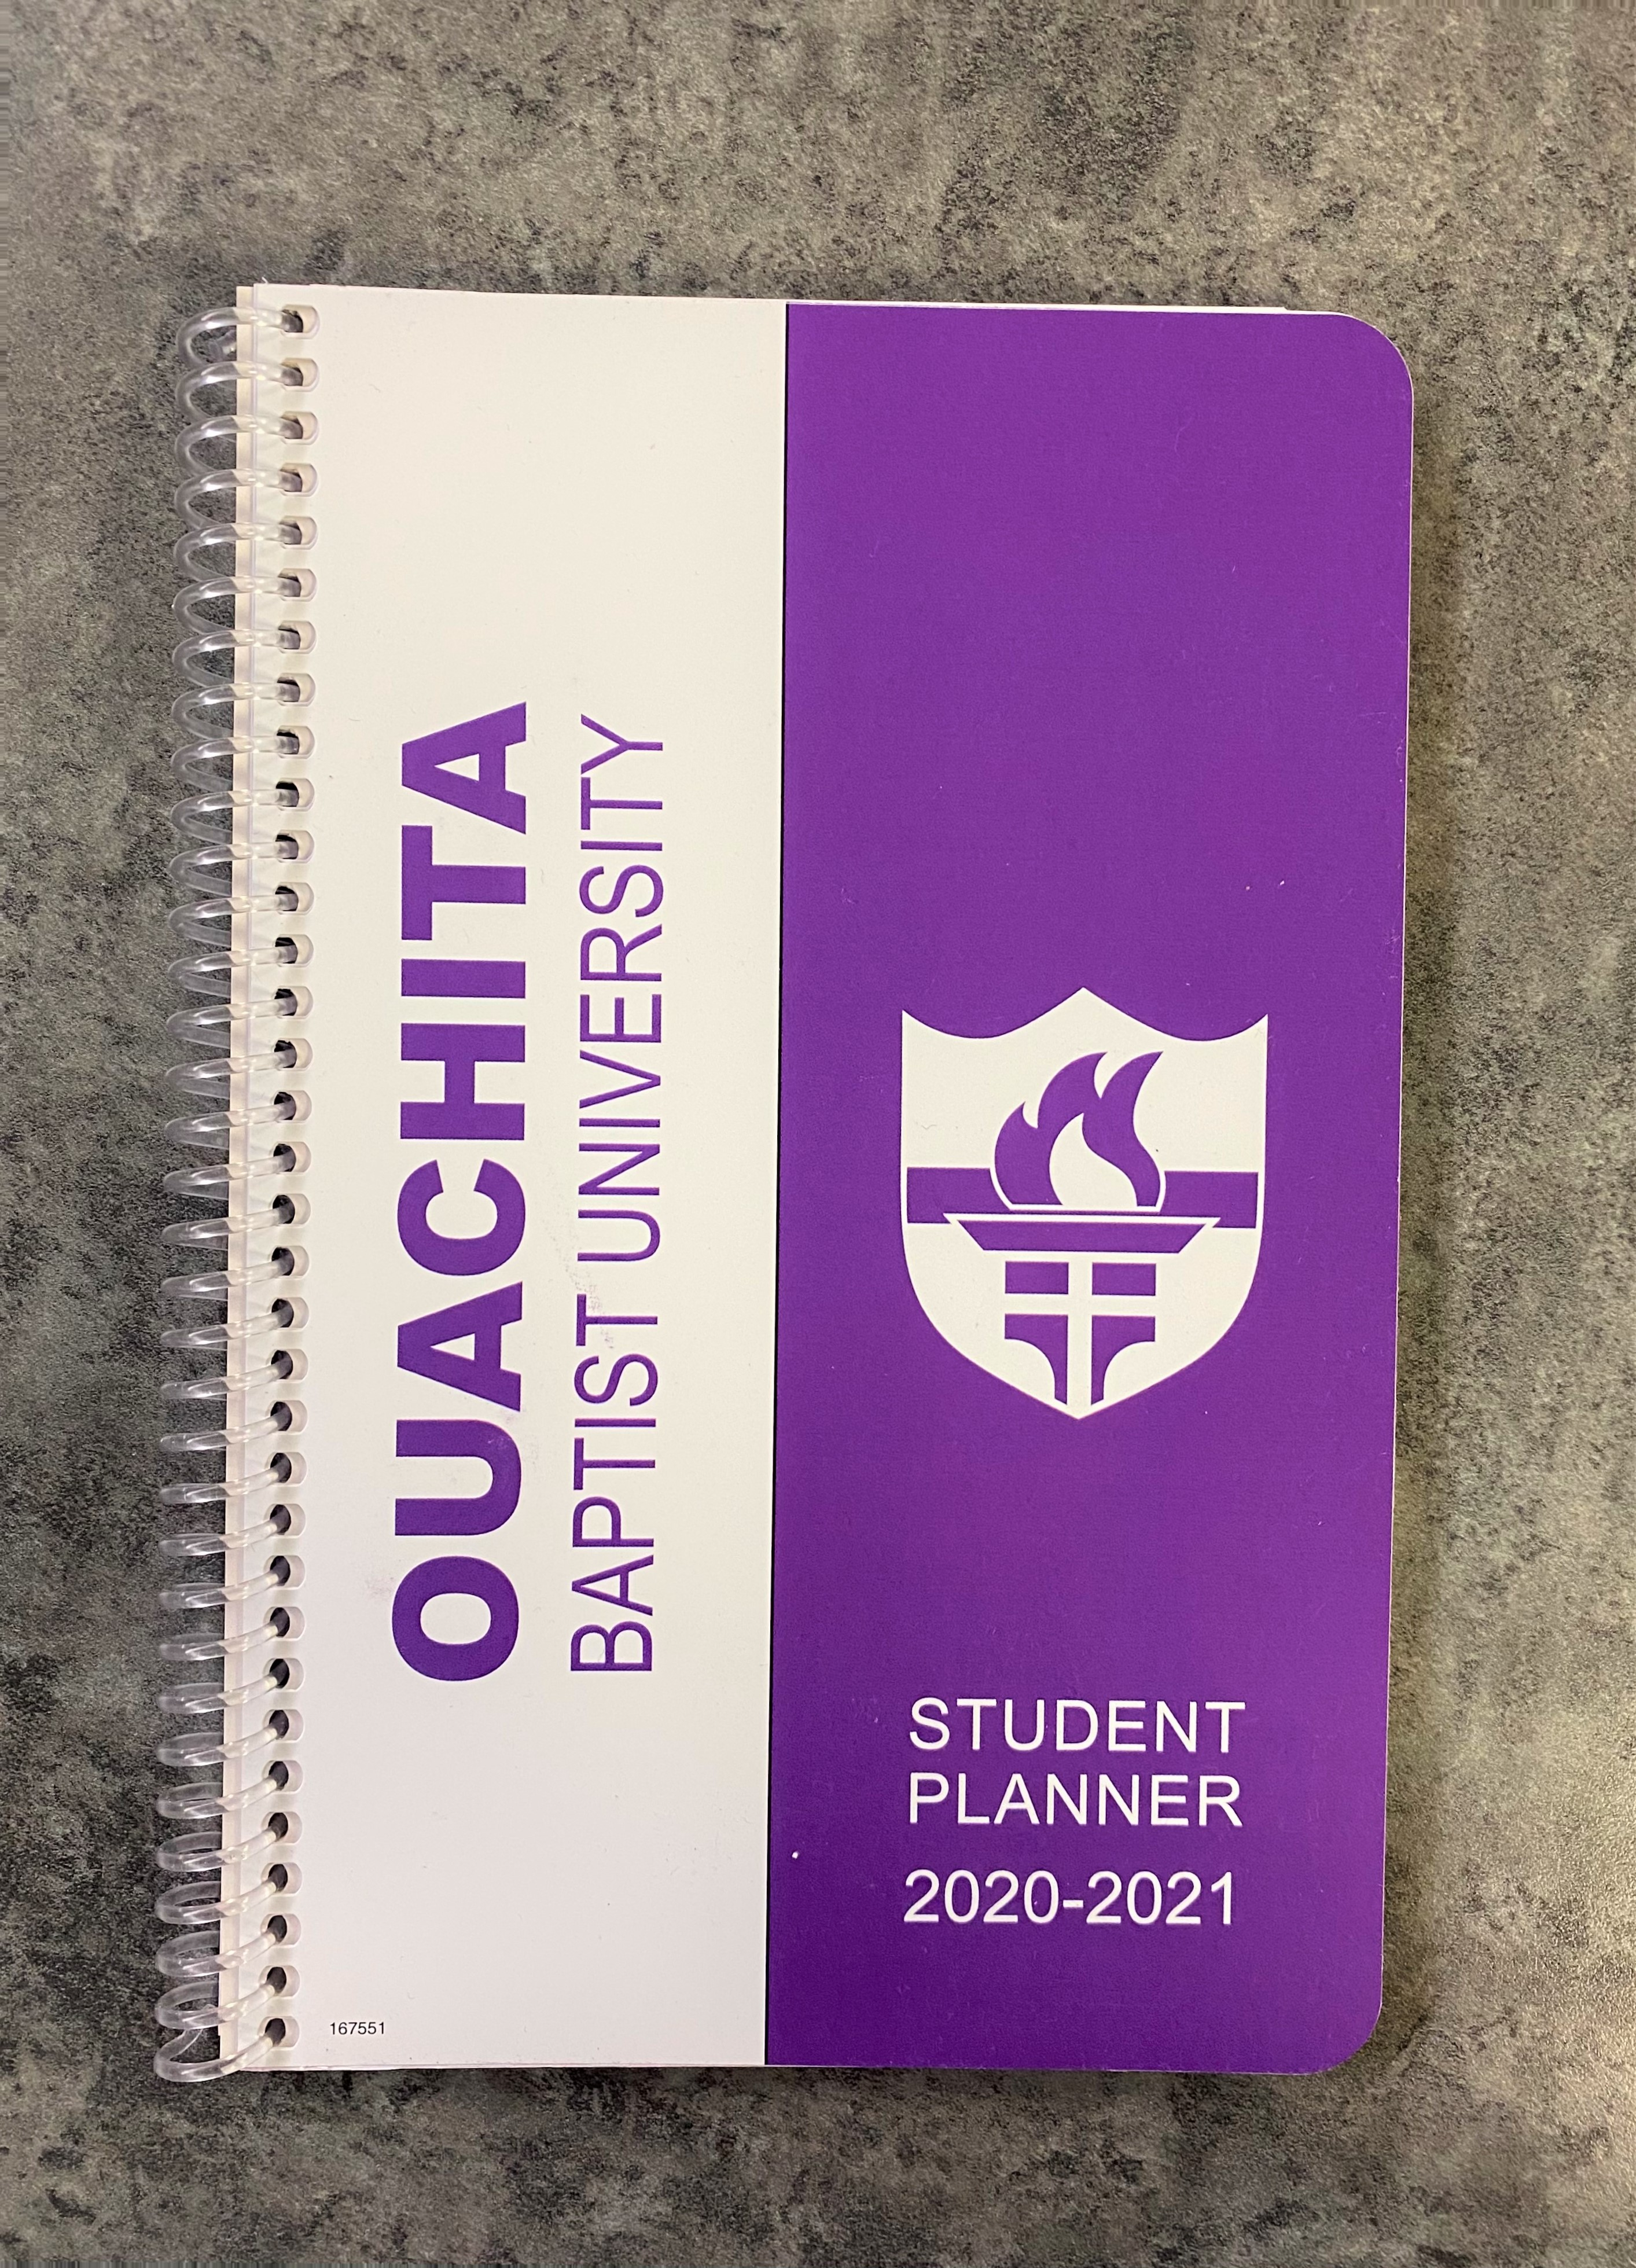 image of: 2020-2021 STUDENT PLANNER